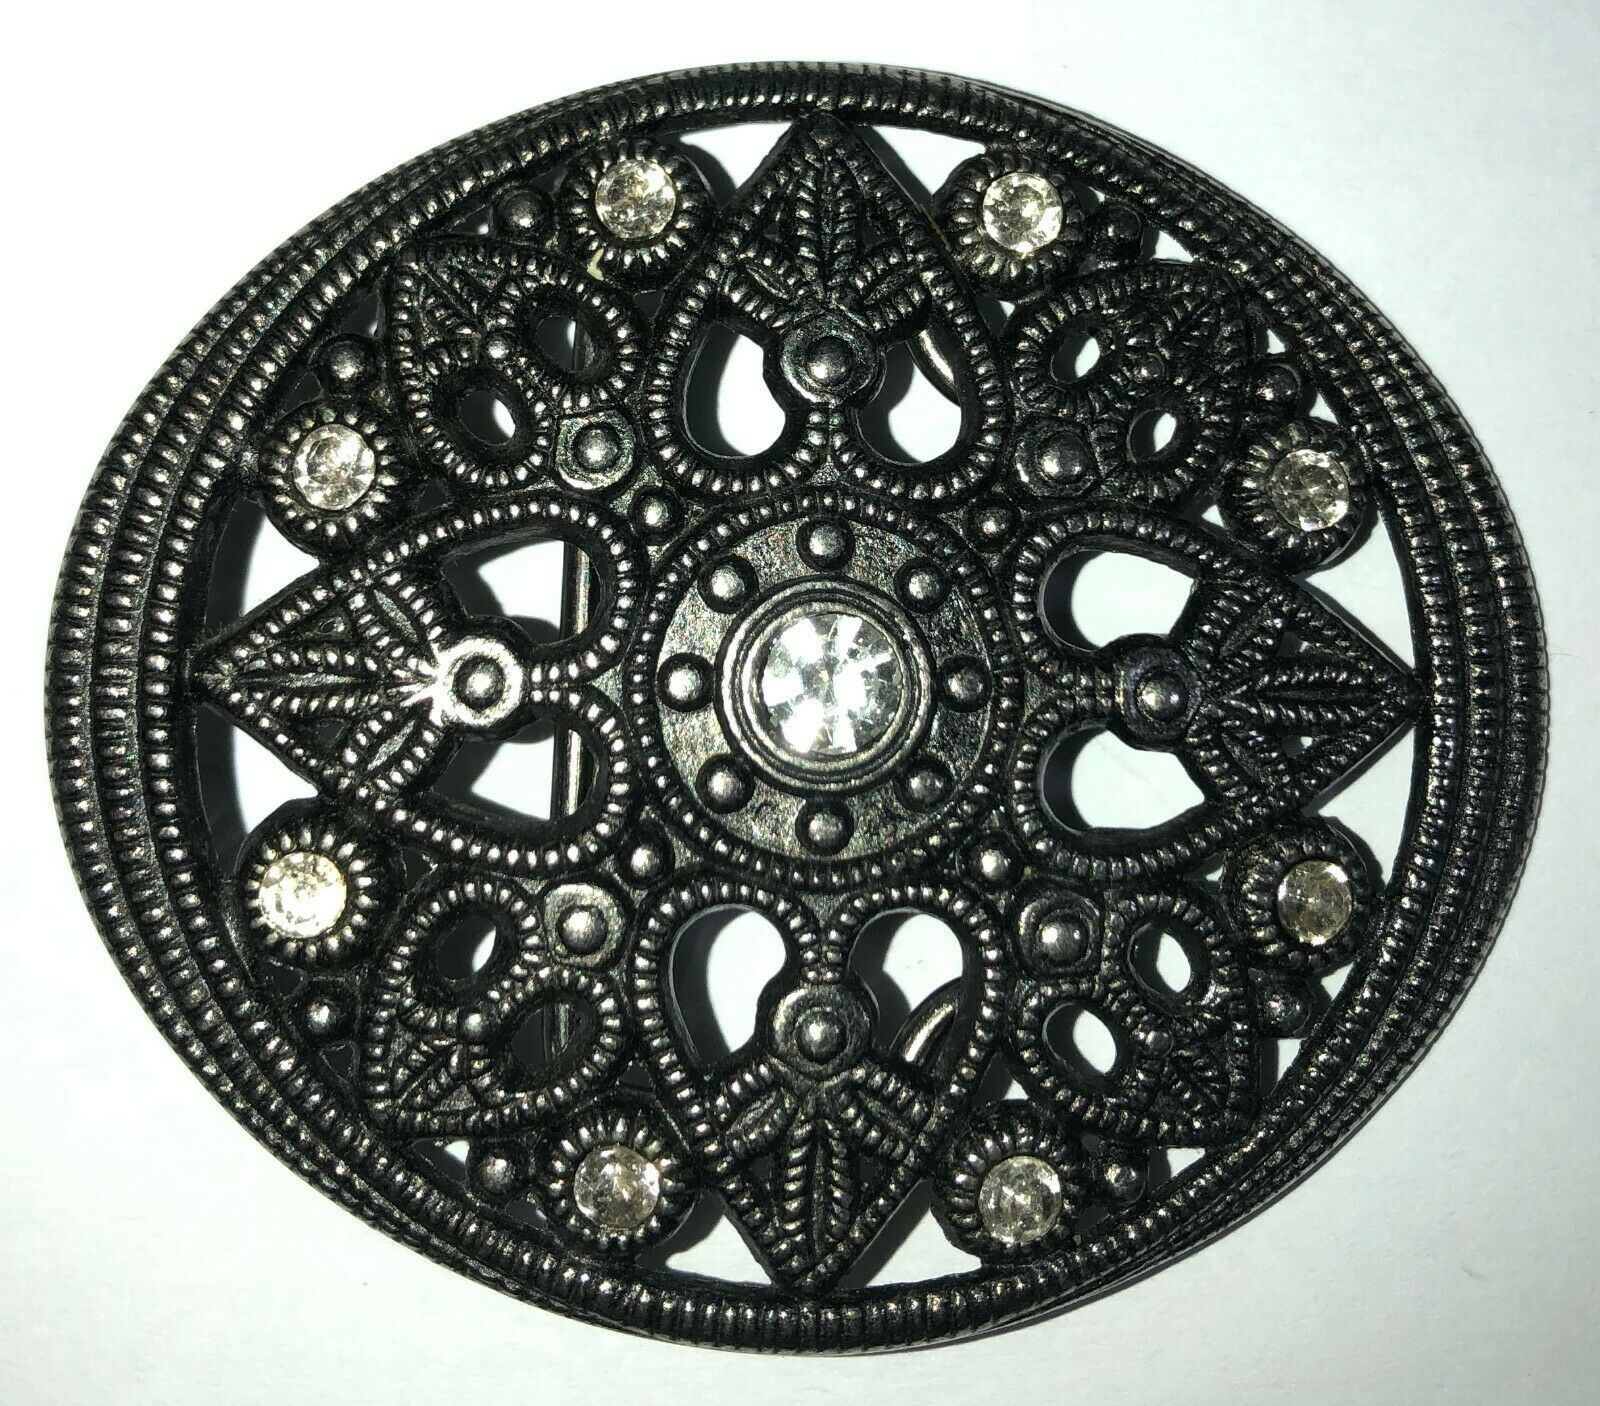 BELT BUCKLE WITH HEARTS & CLEAR GLASS STONES For Women